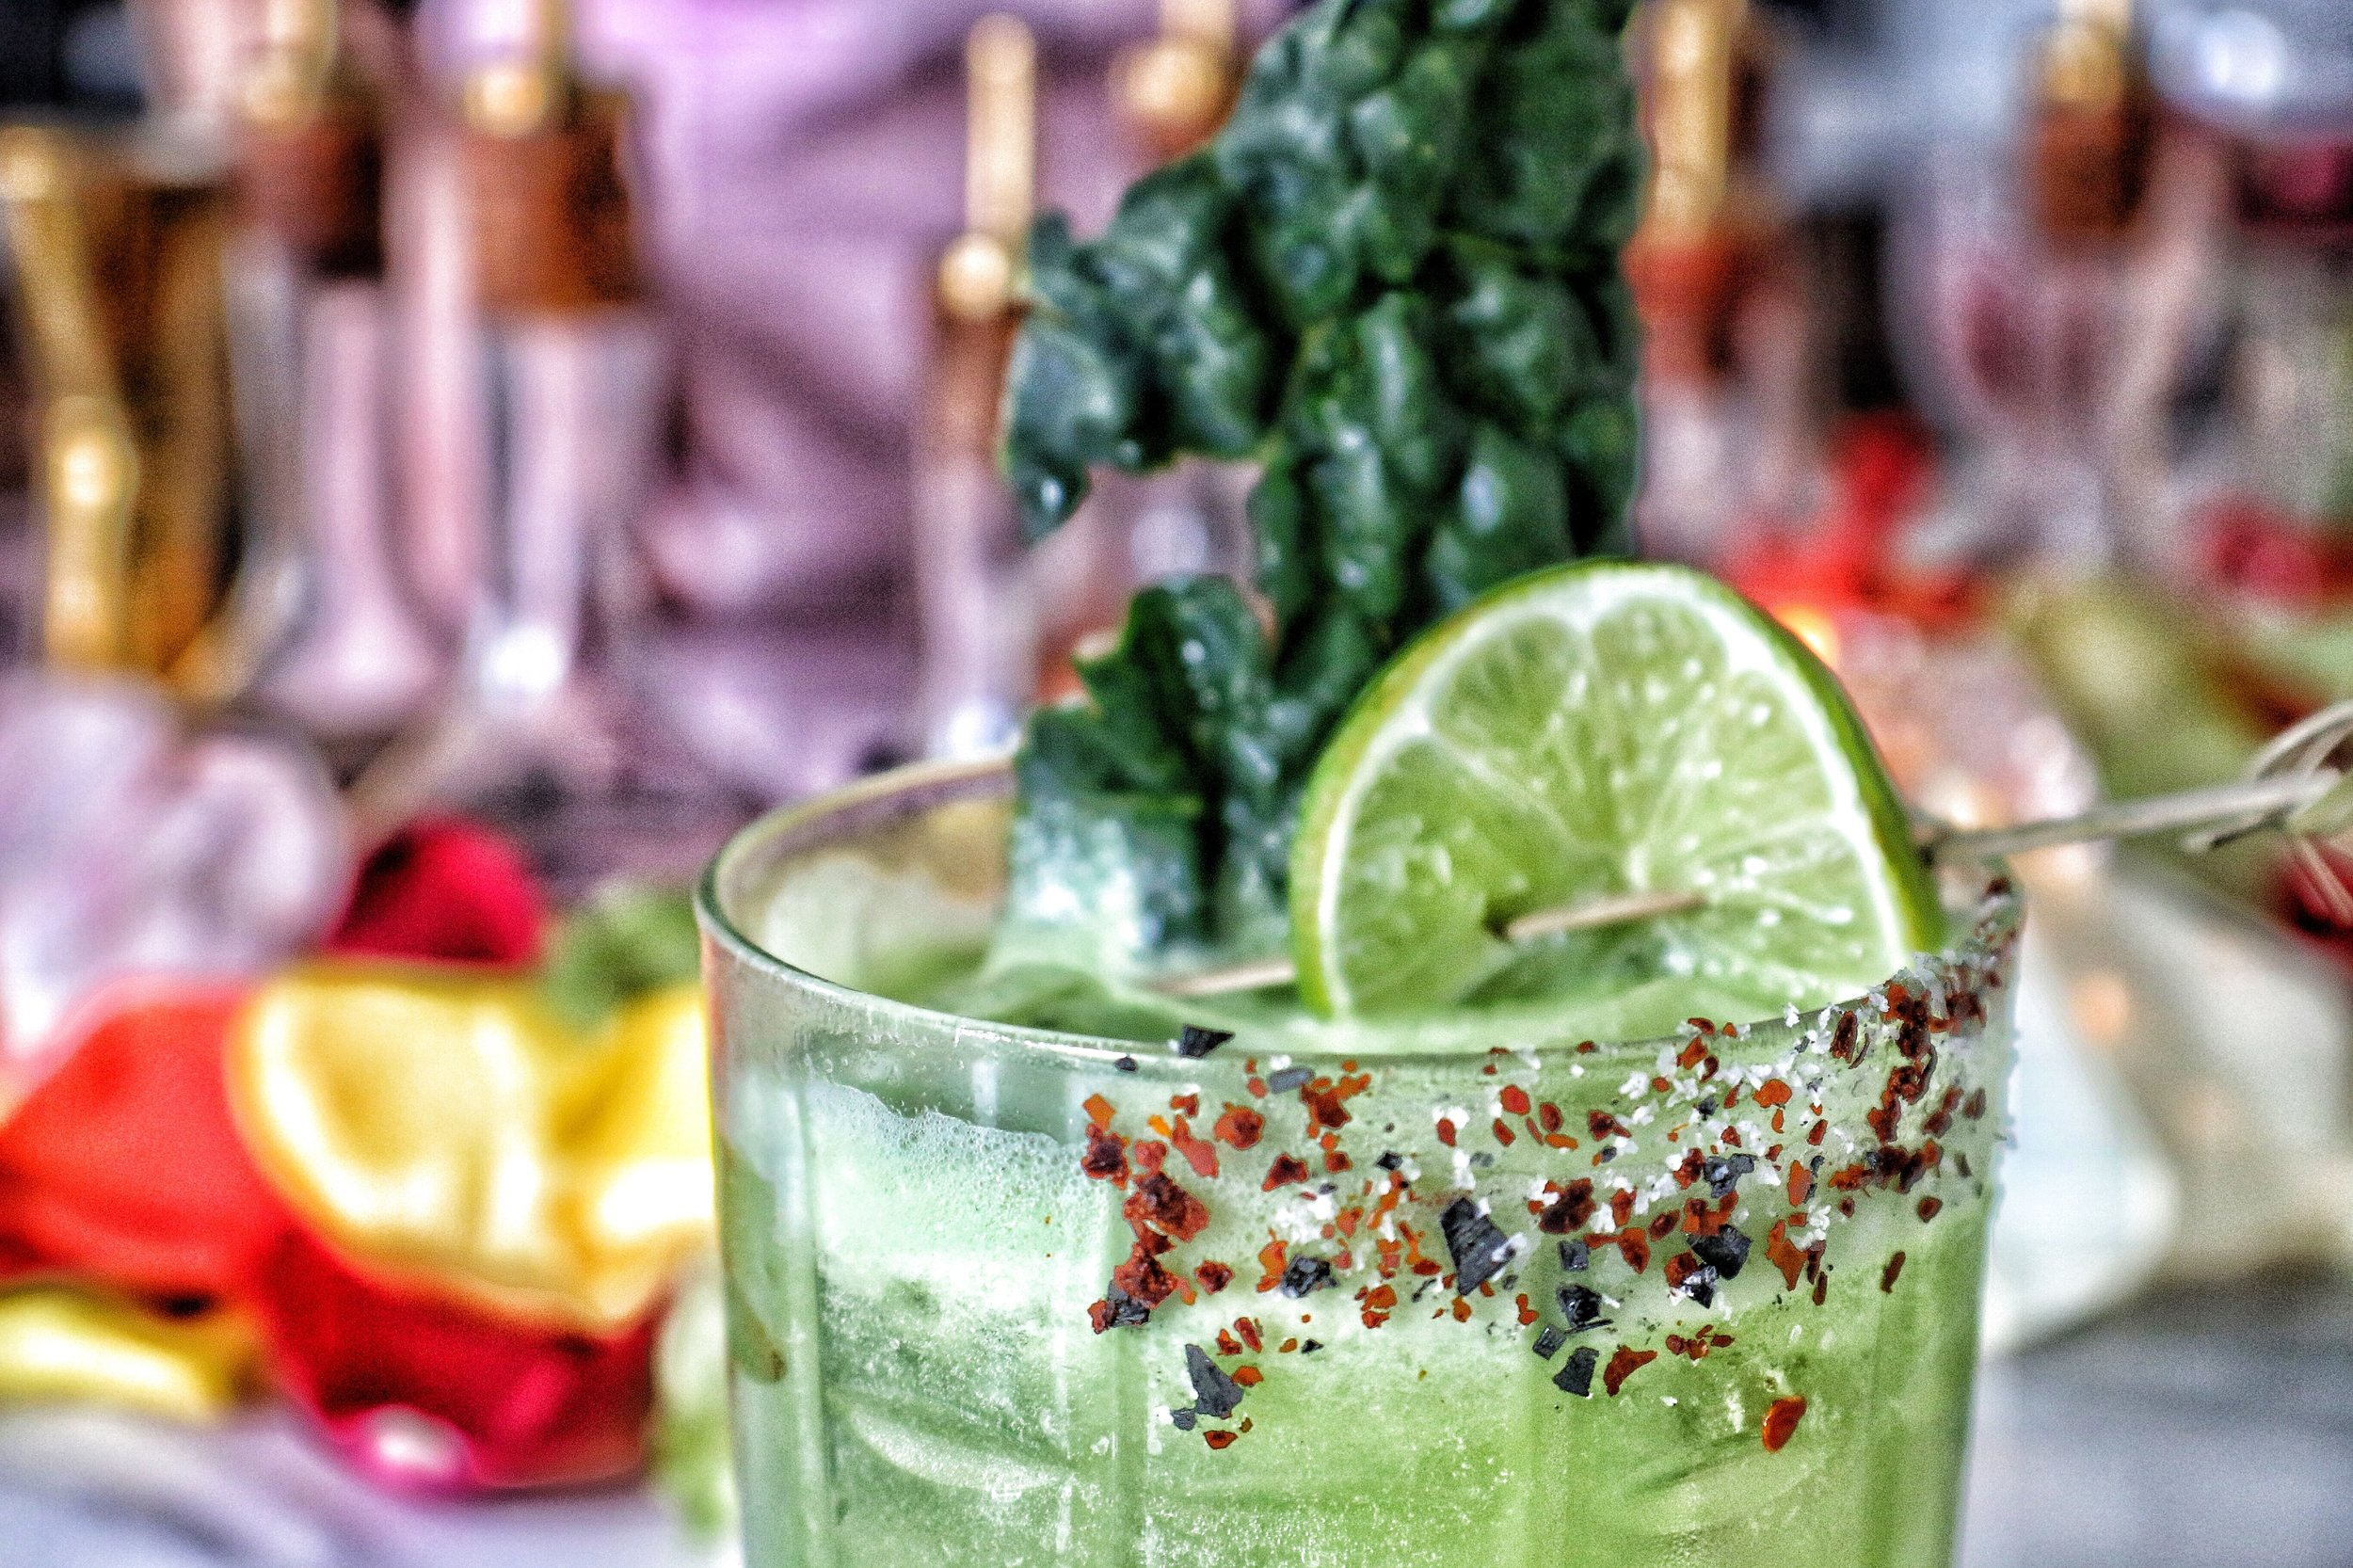 Too Good For You  Tequila / Kale / Lime / Agave / Cucumber